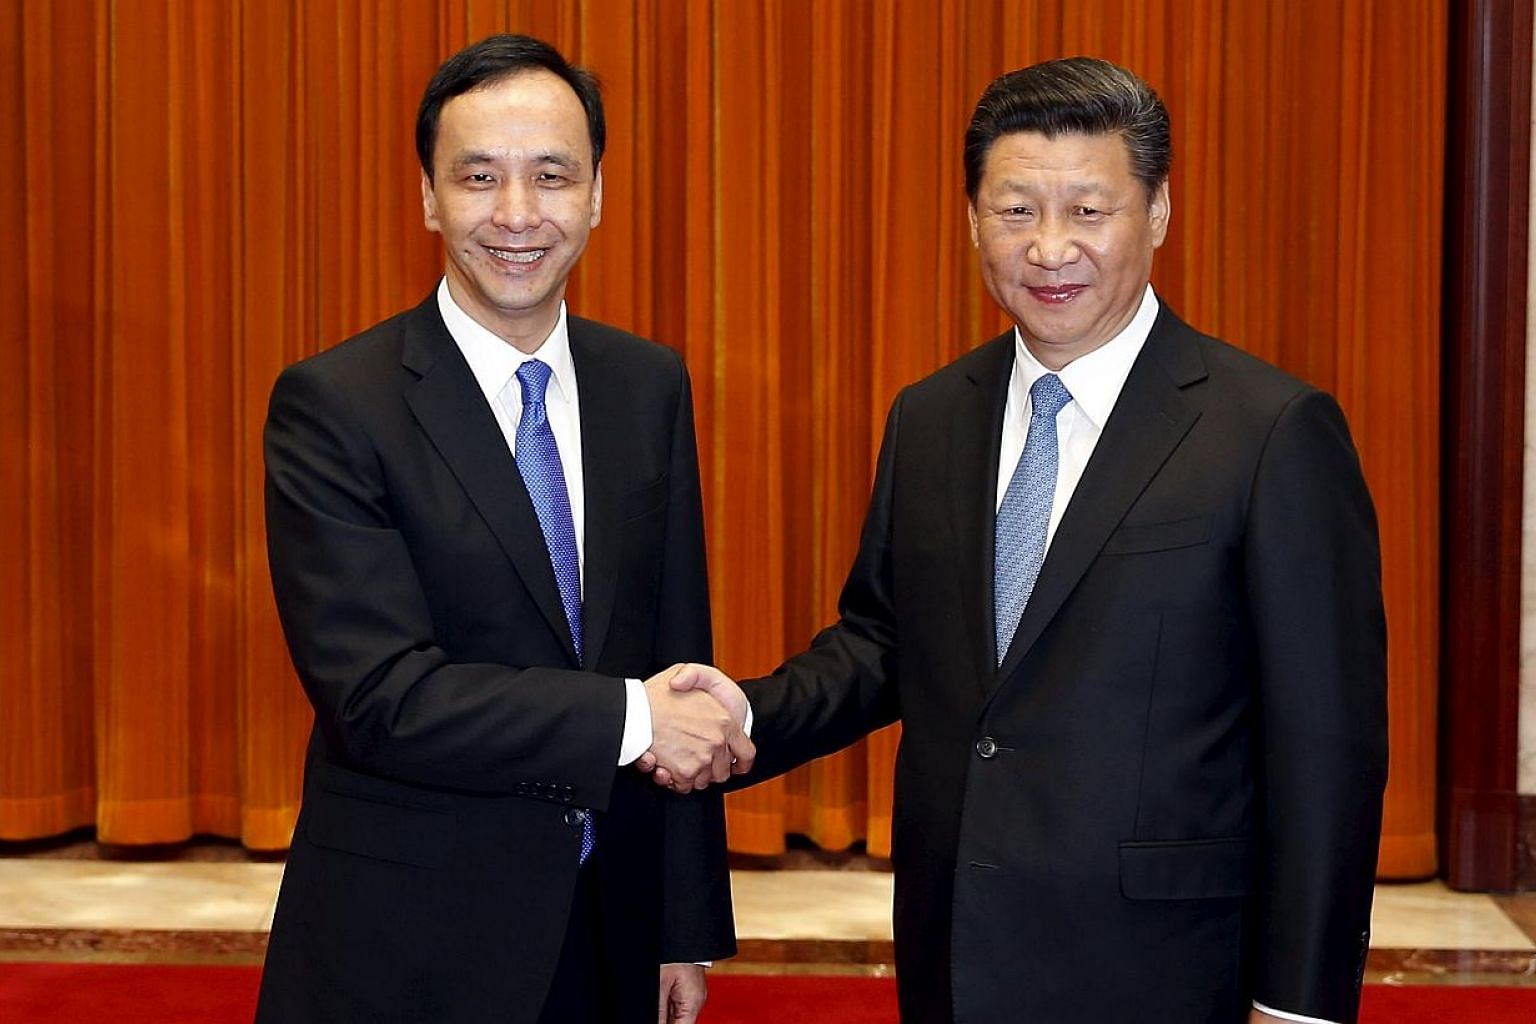 Chairman of Taiwan's ruling Nationalist Kuomintang Party (KMT) Eric Chu, also New Taipei mayor, shakes hands with China's President Xi Jinping as they pose for pictures during their meeting in Beijing, China on May 4, 2015. -- PHOTO: REUTERS